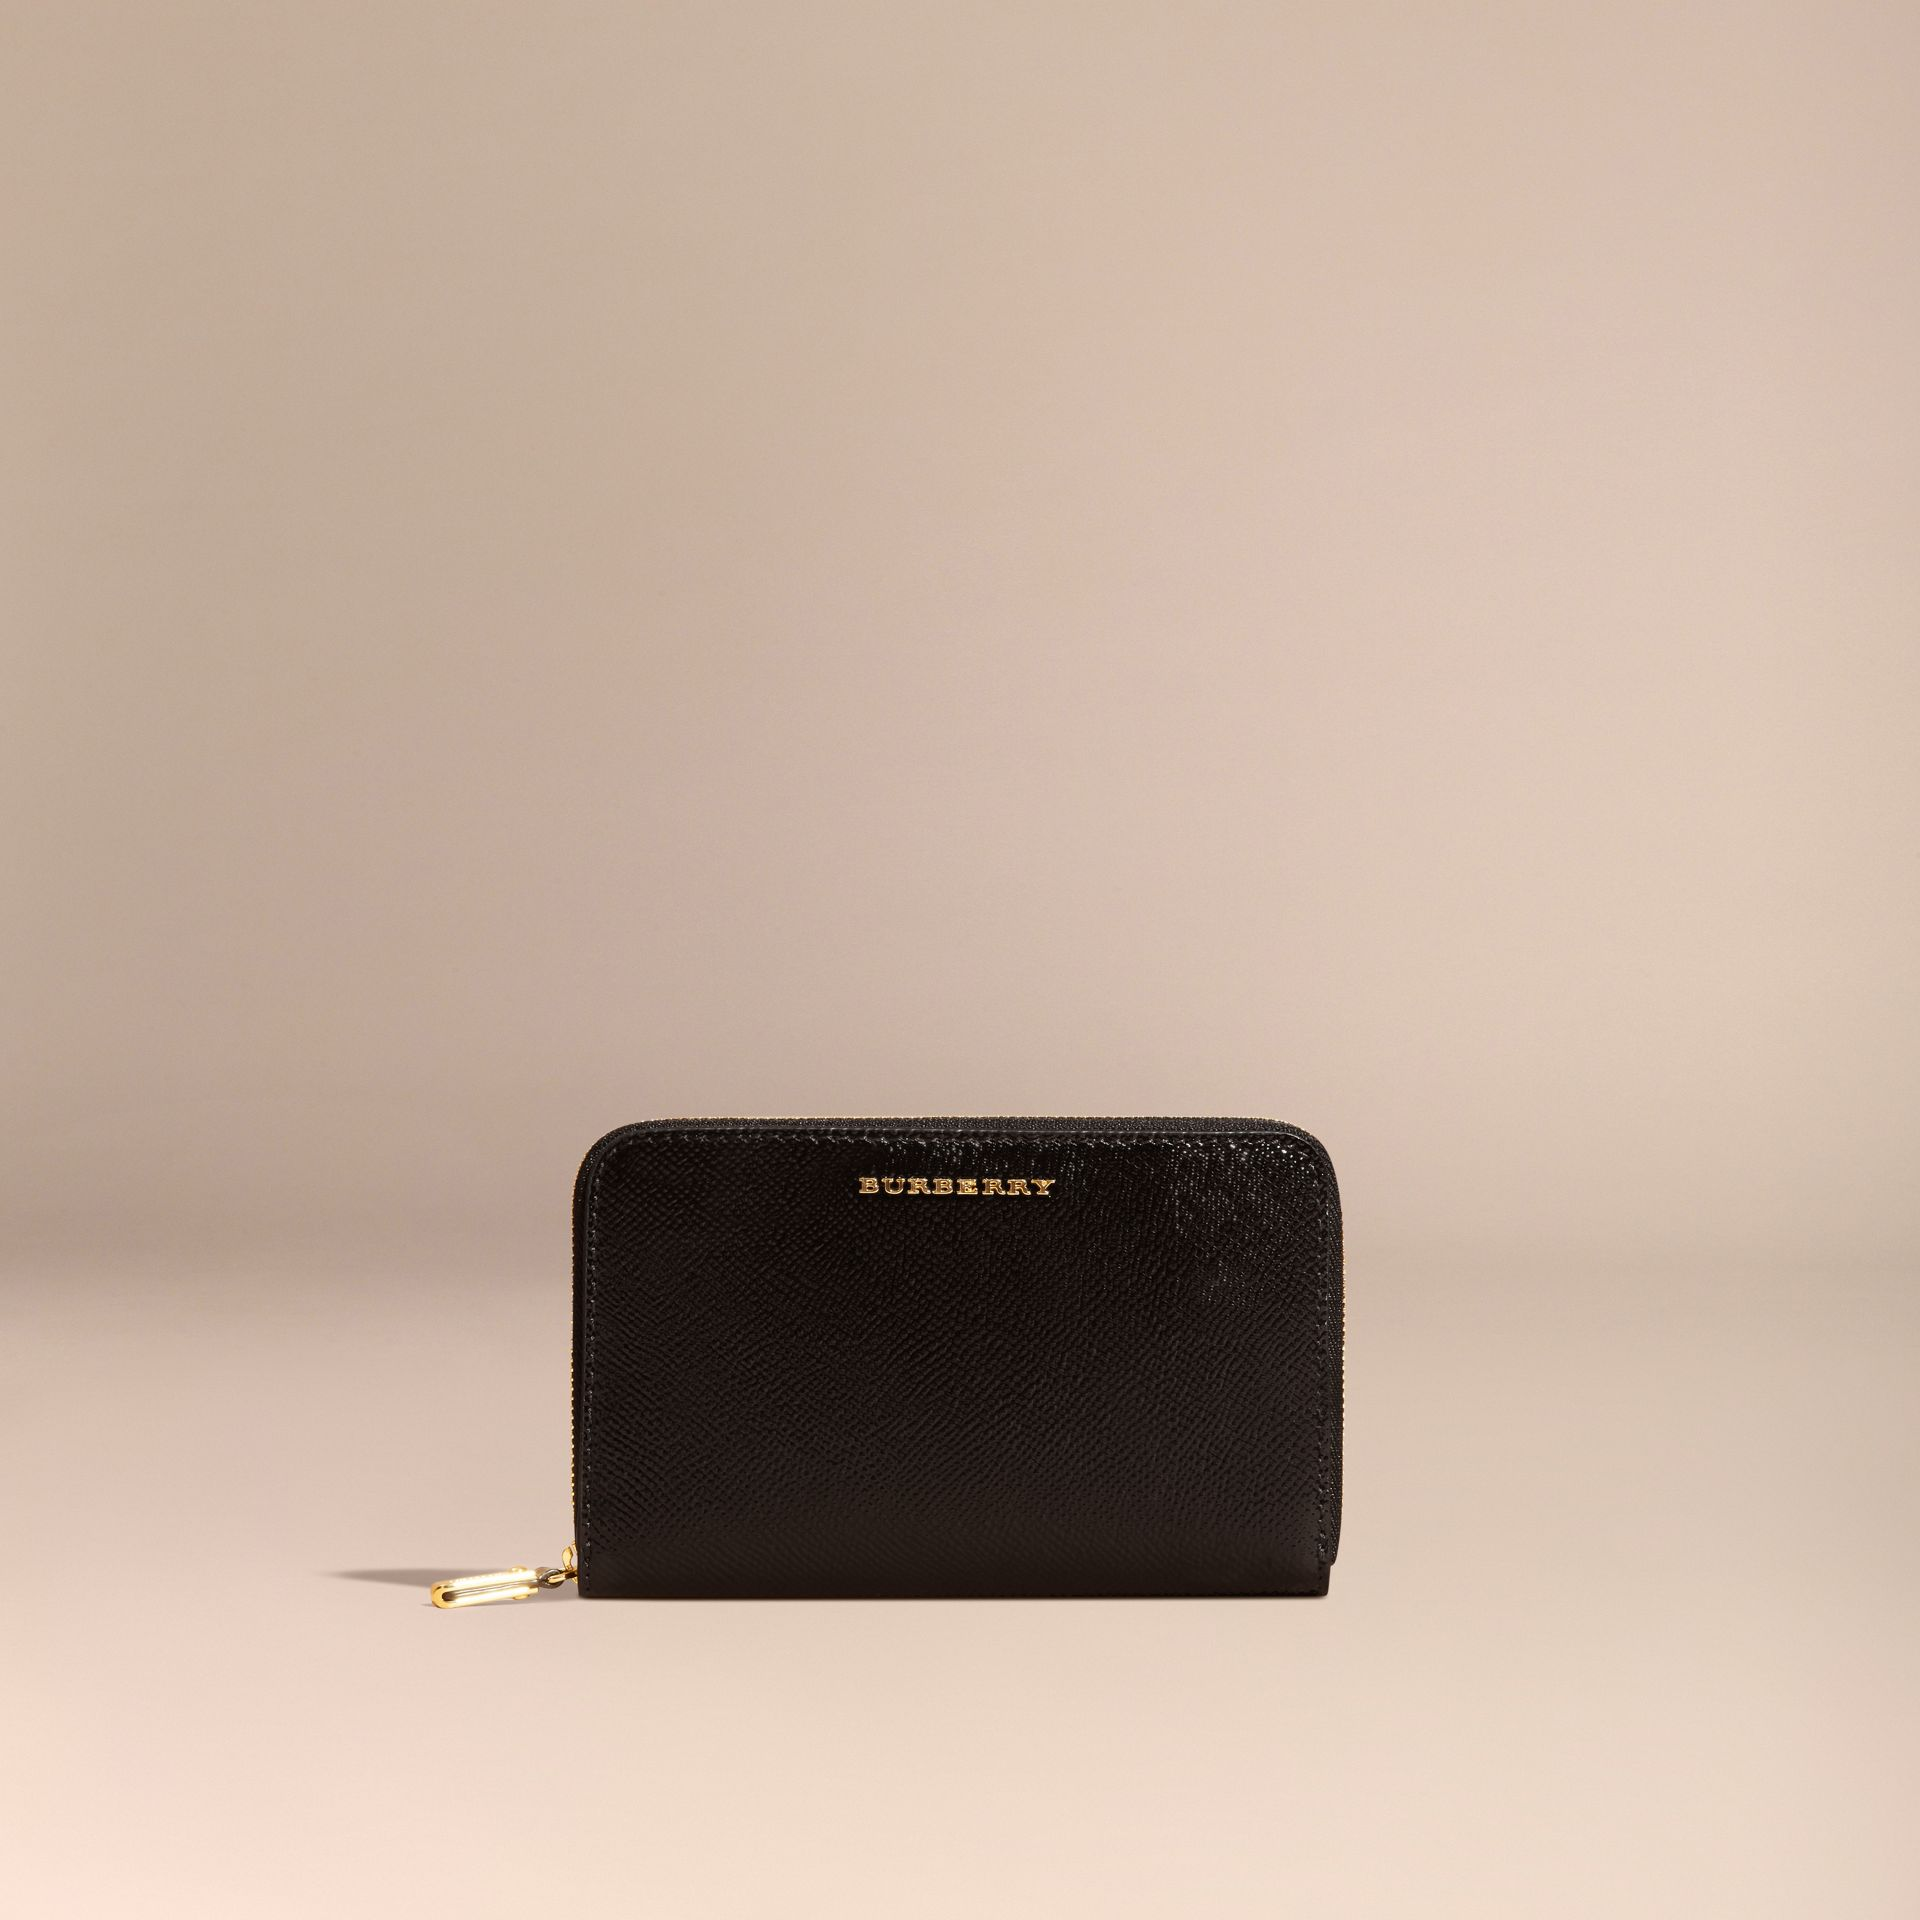 Patent London Leather Ziparound Wallet in Black - gallery image 6